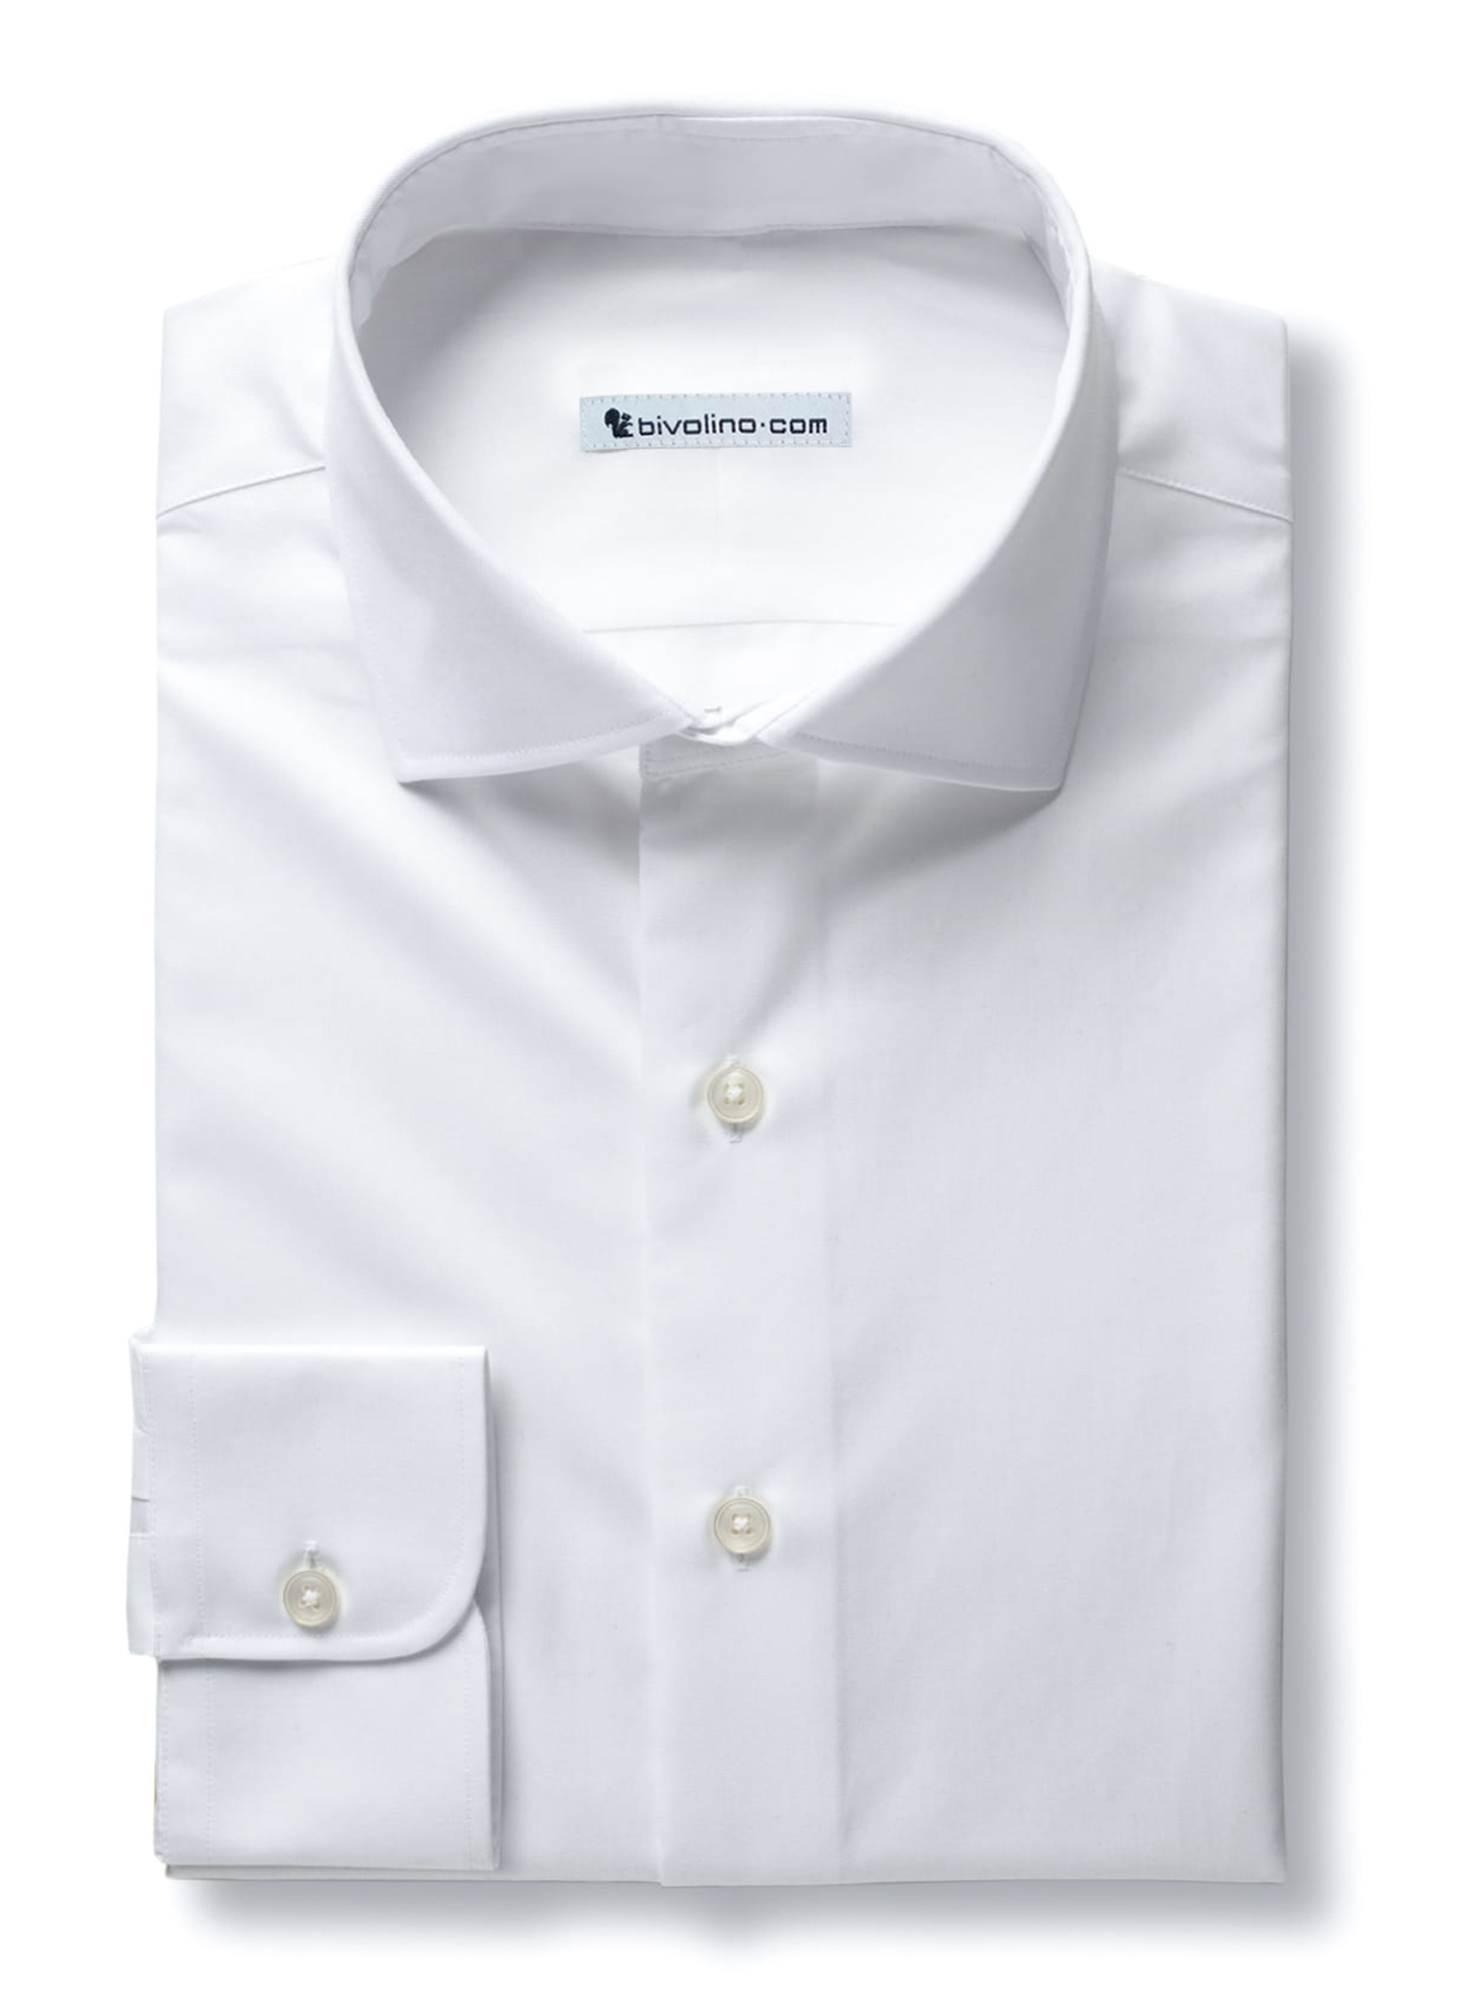 ESTILLI - Plain white twill - non-iron - SANTI 1